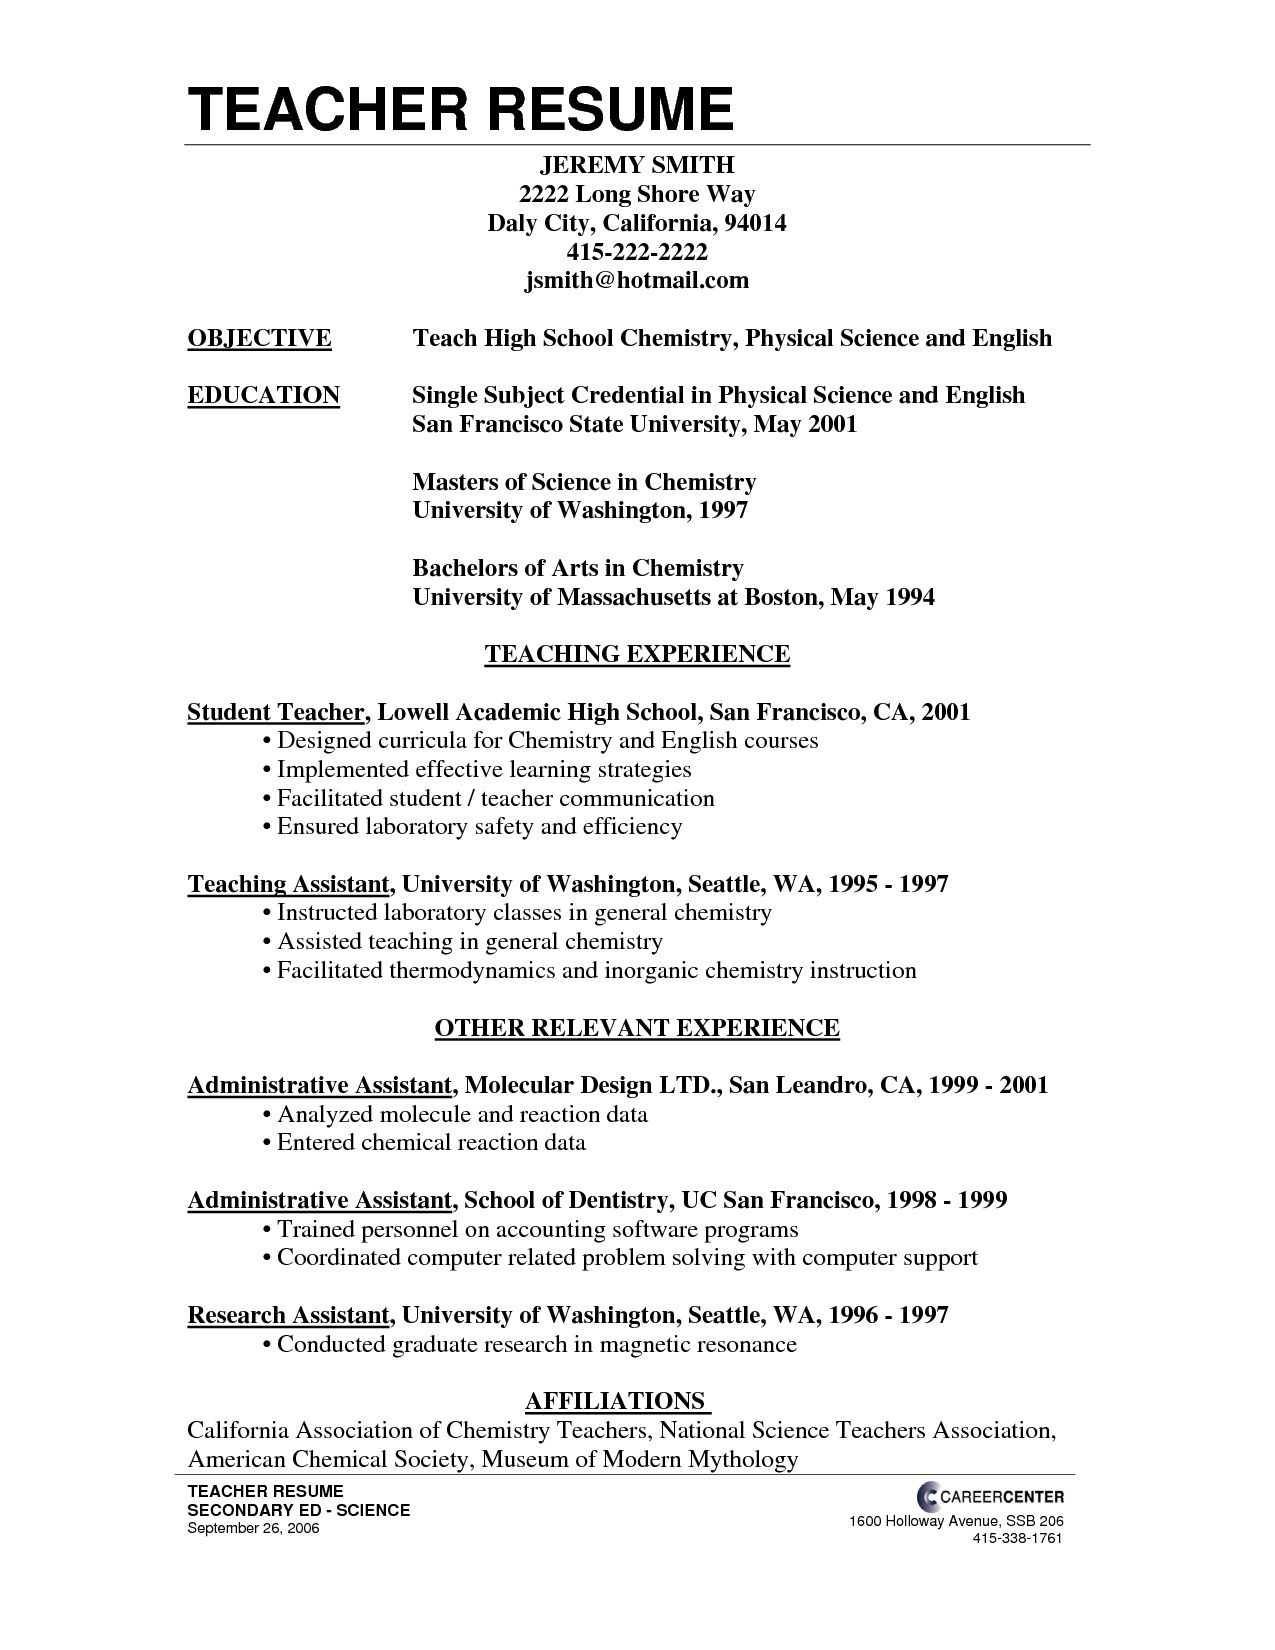 Education Resume Template High School Teacher Resume  Getha Krisha  Pinterest  Teacher